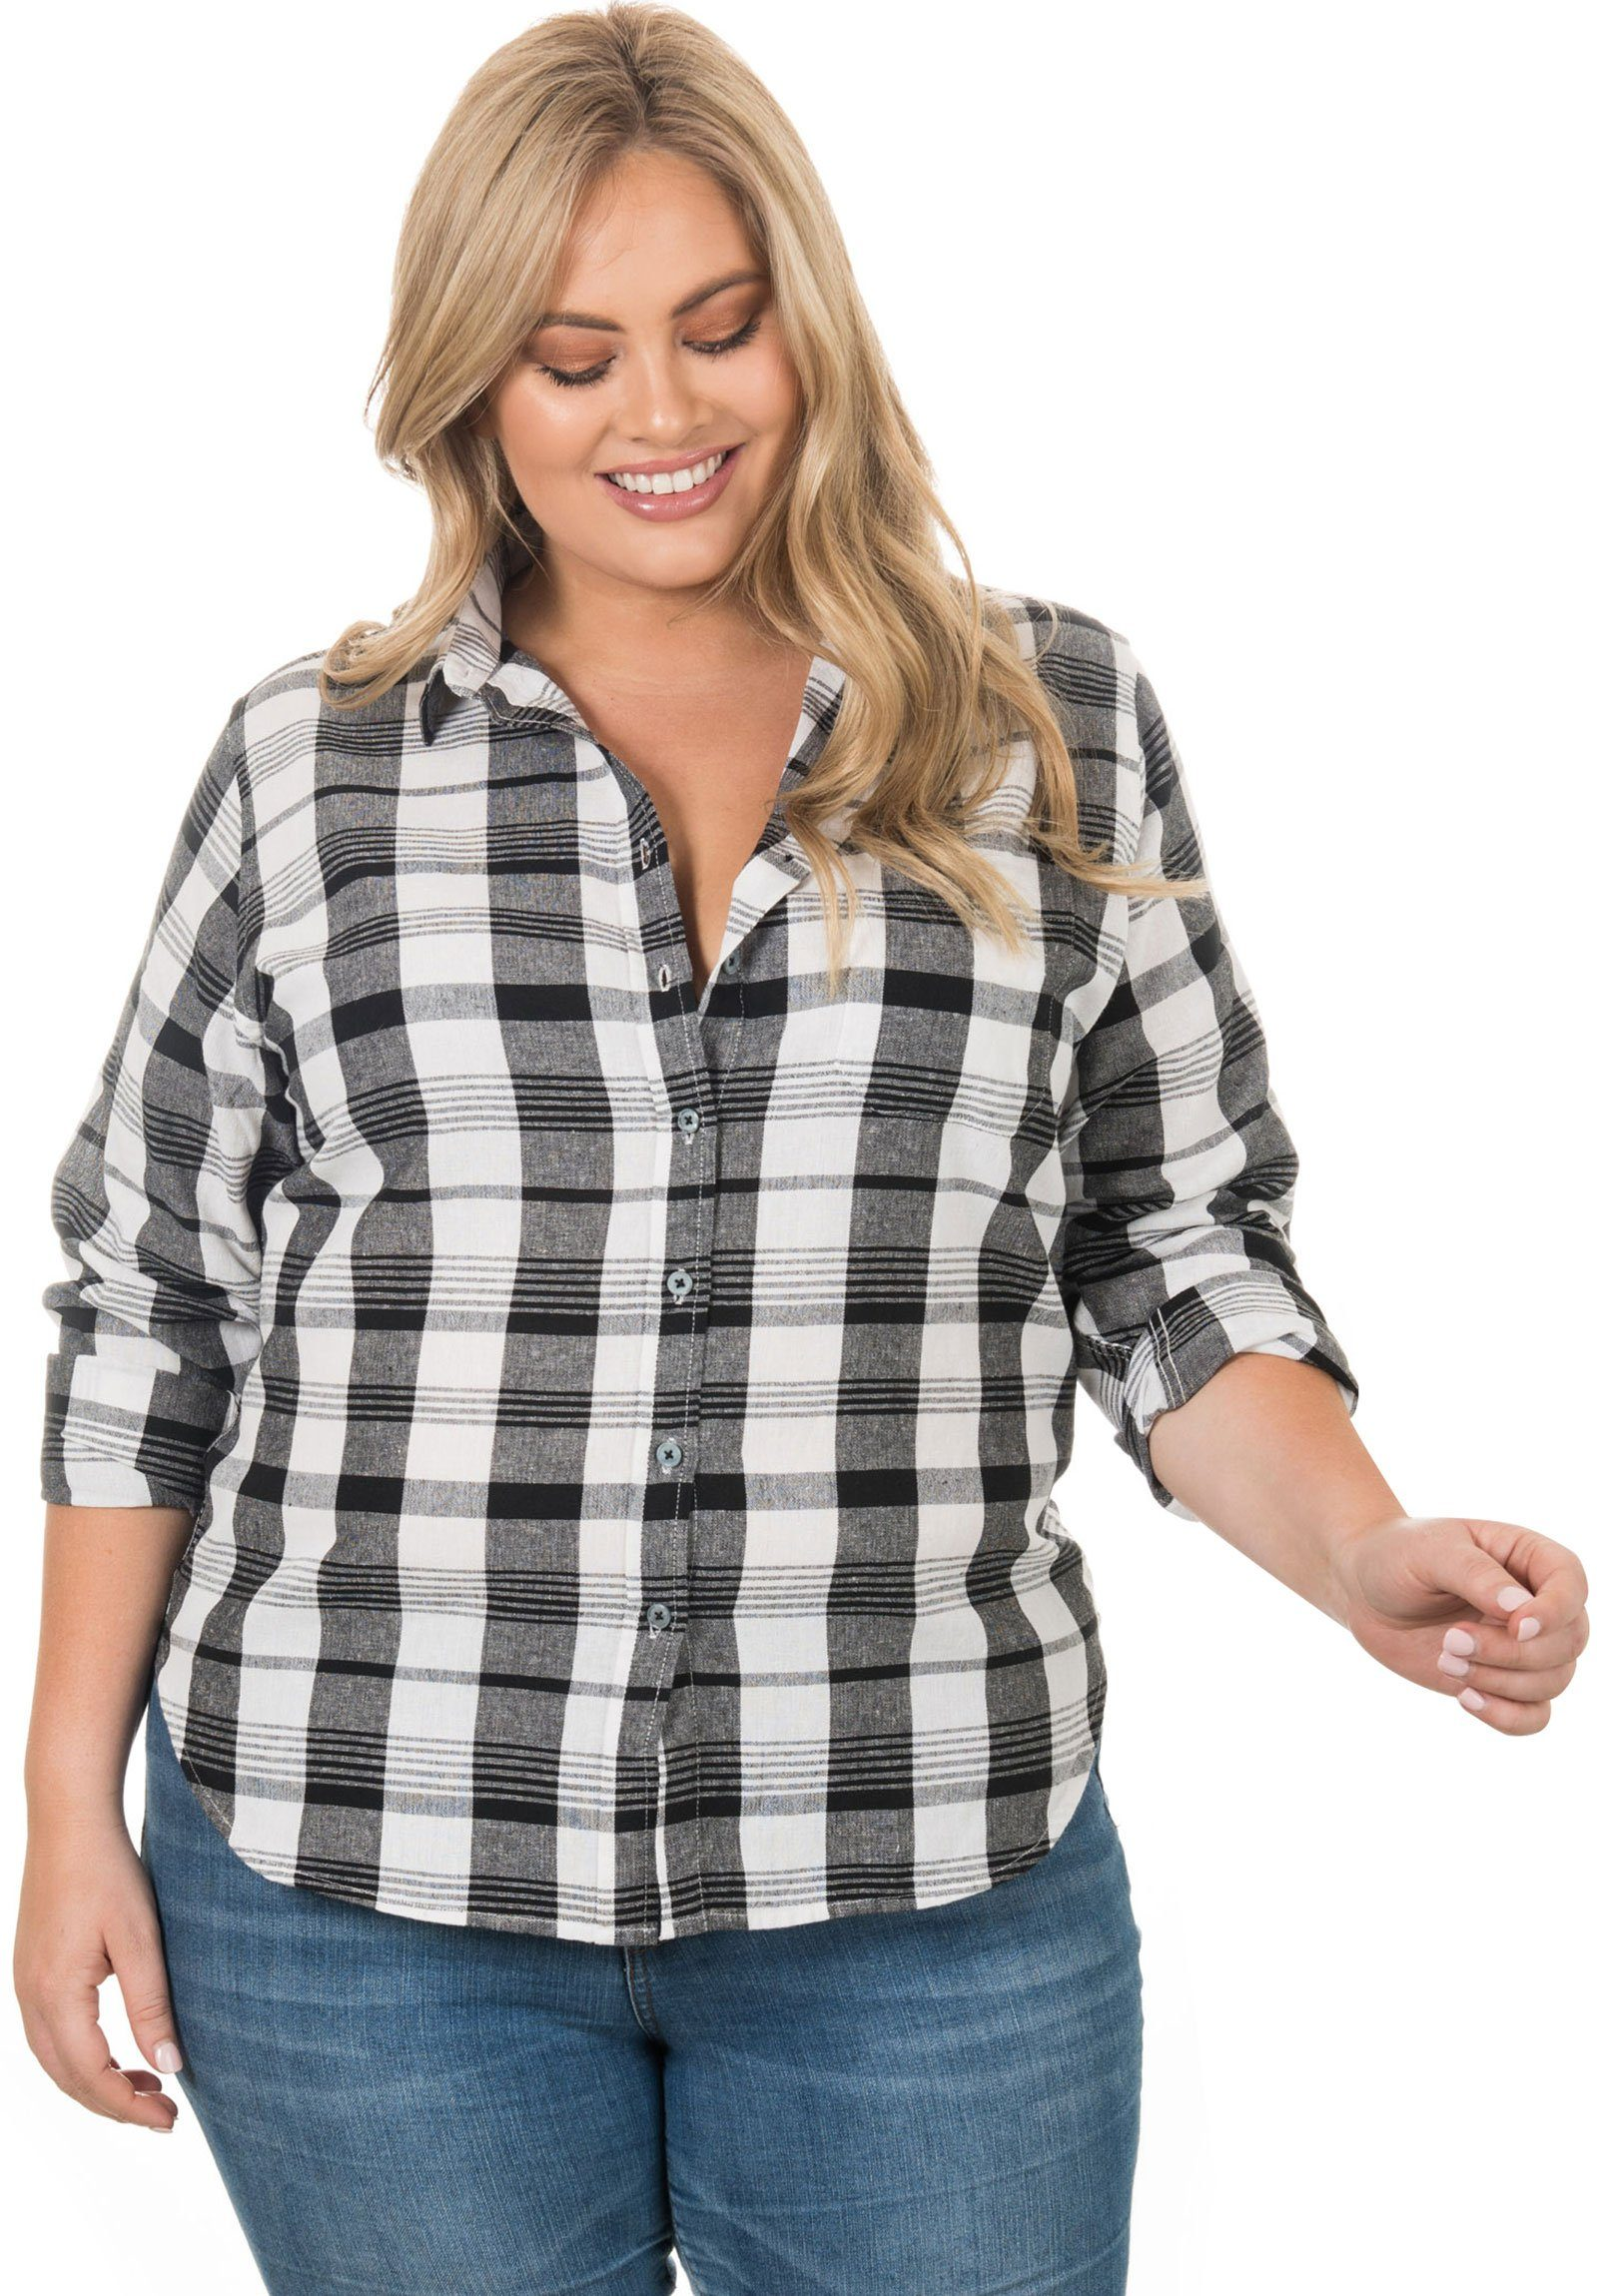 Plaid Plus Black & White, linen check Curvy Size Shirt